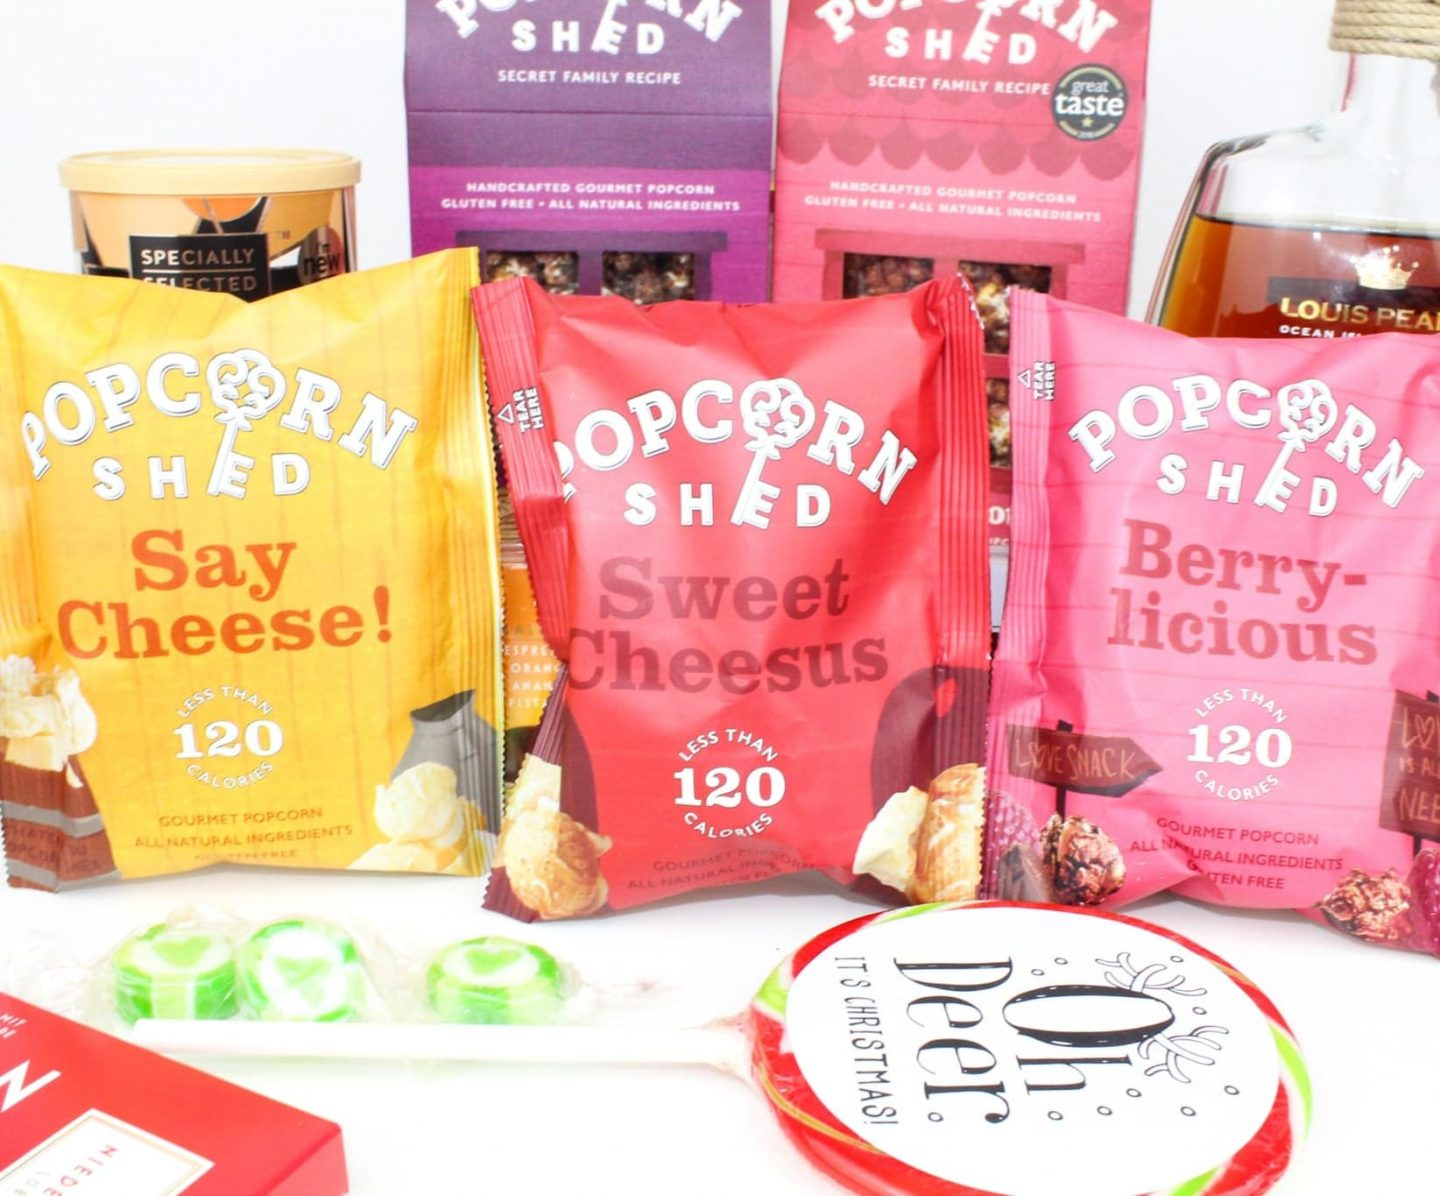 Gift Ideas for Foodies | Popcorn Shed